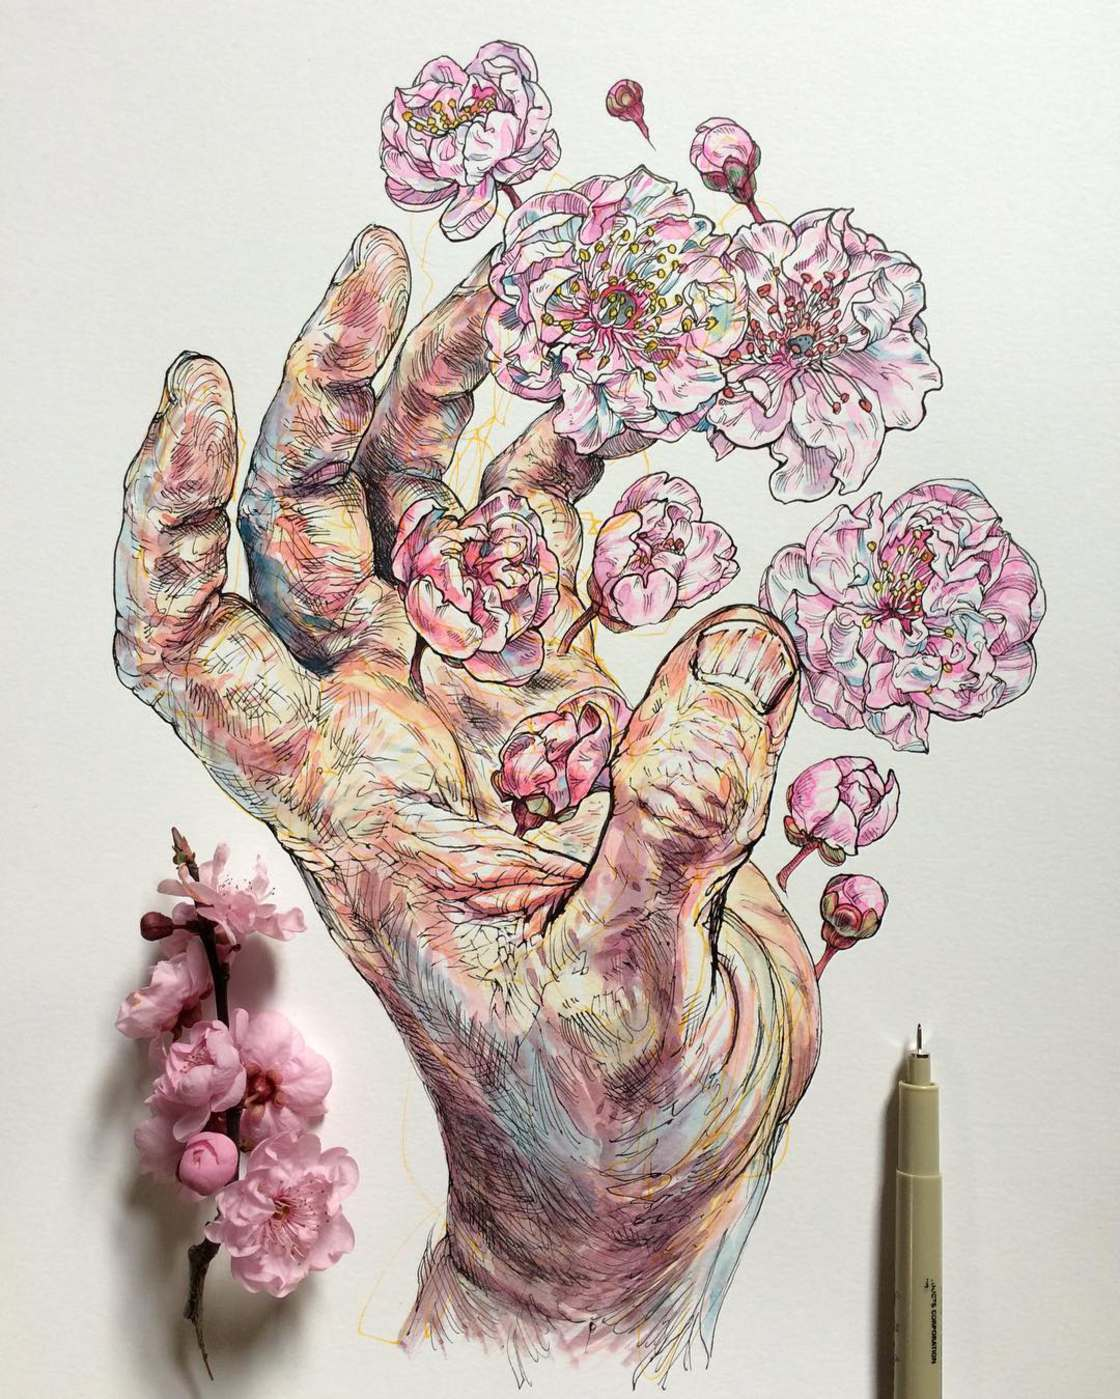 Hands and Flowers - The poetic illustrations by Noel Badges Pugh